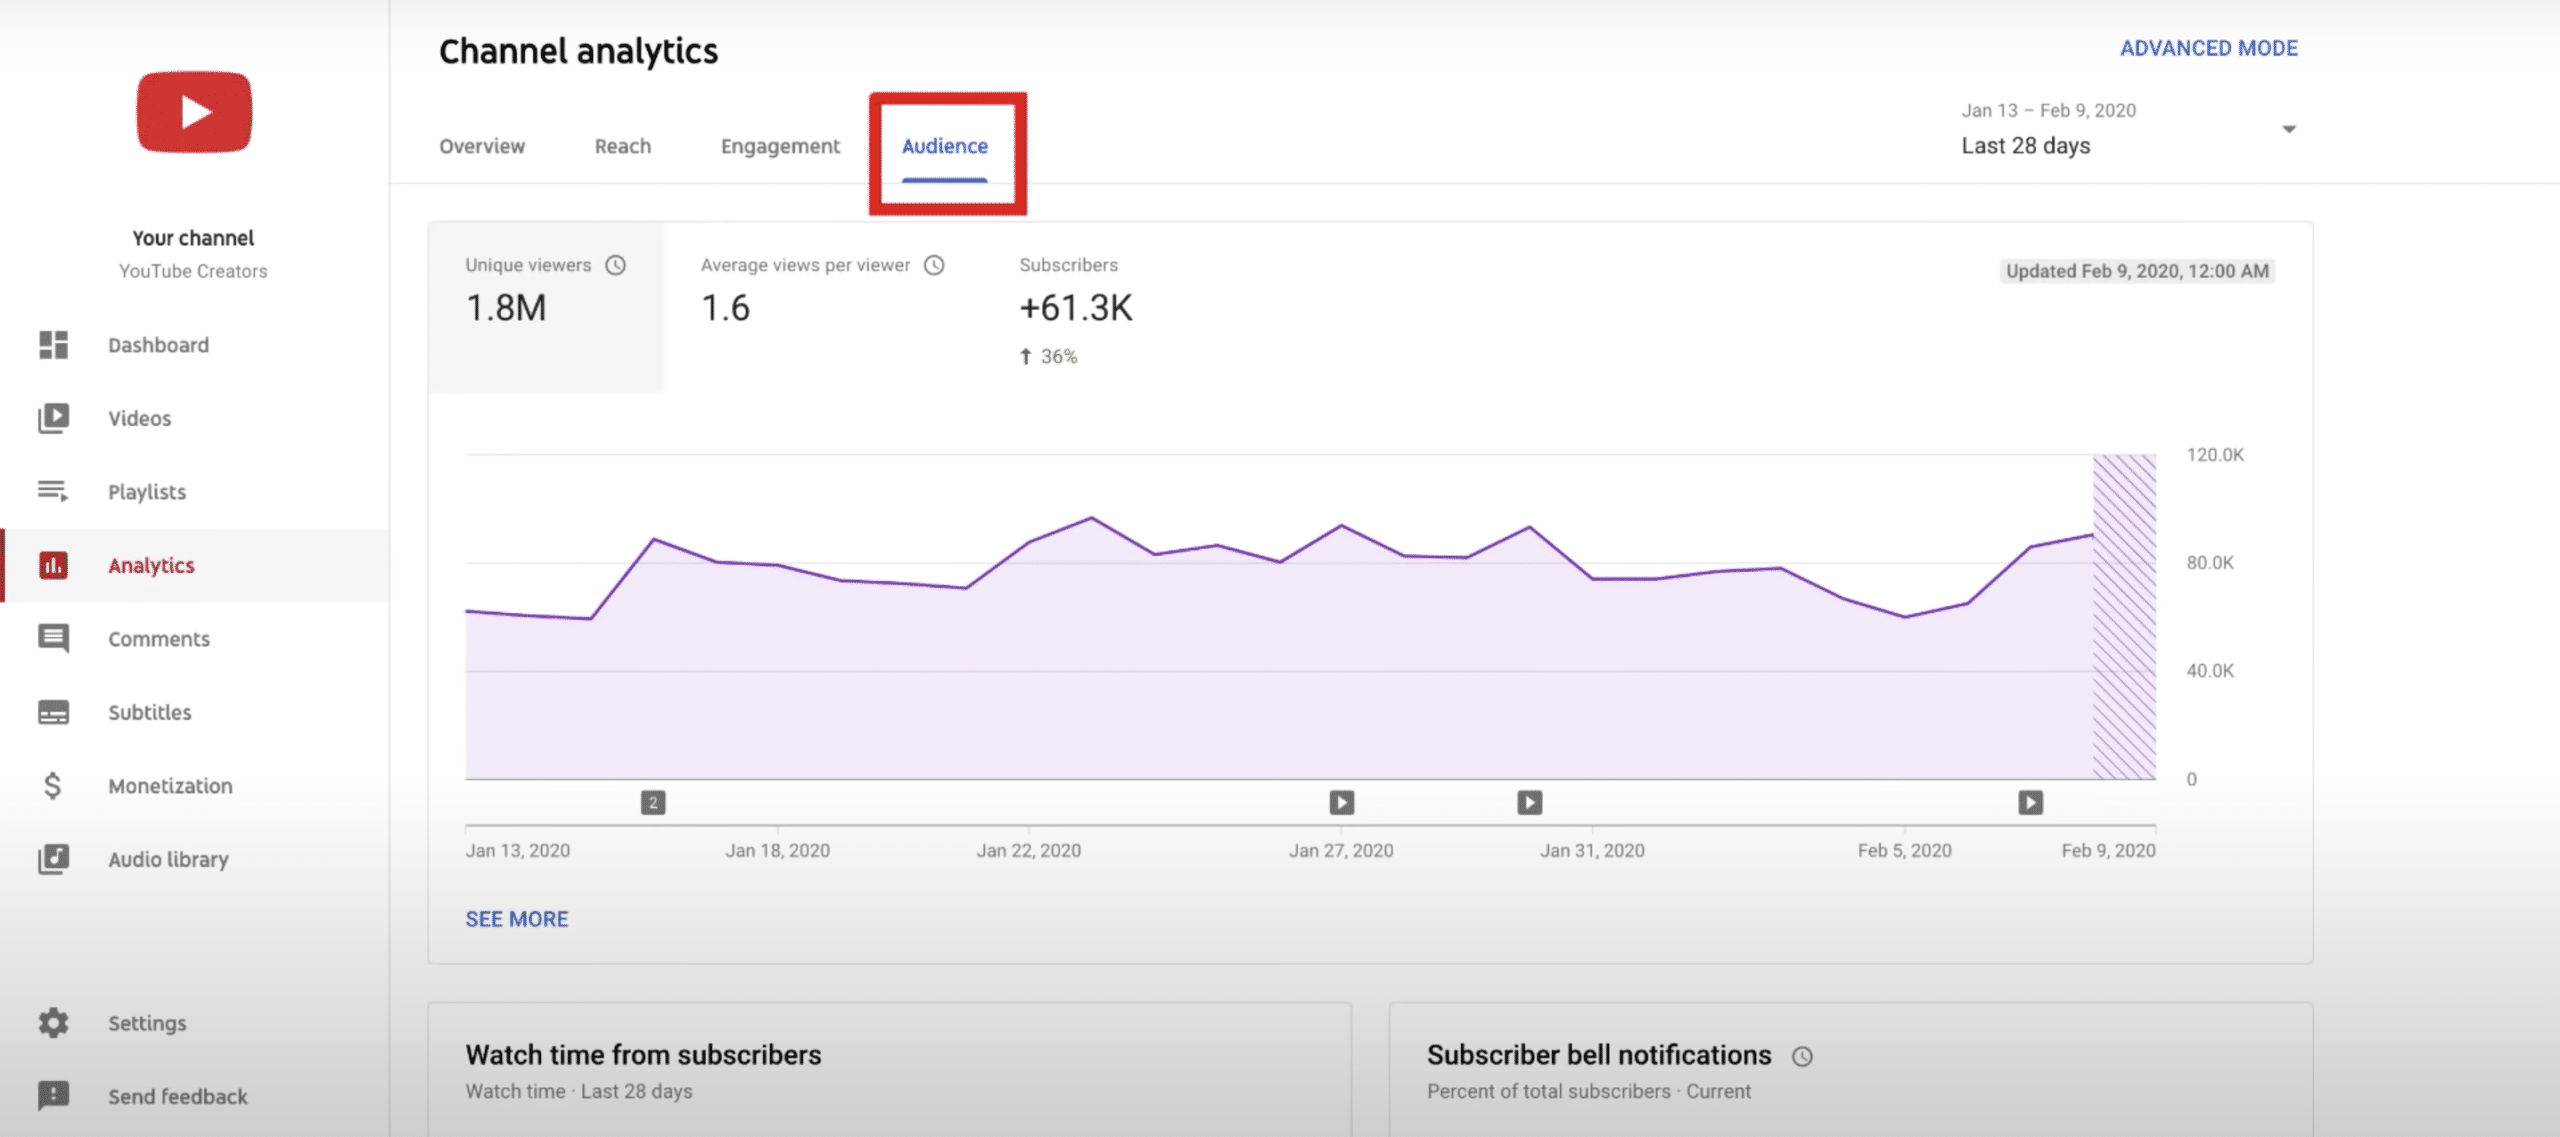 YouTube business channel analytics information